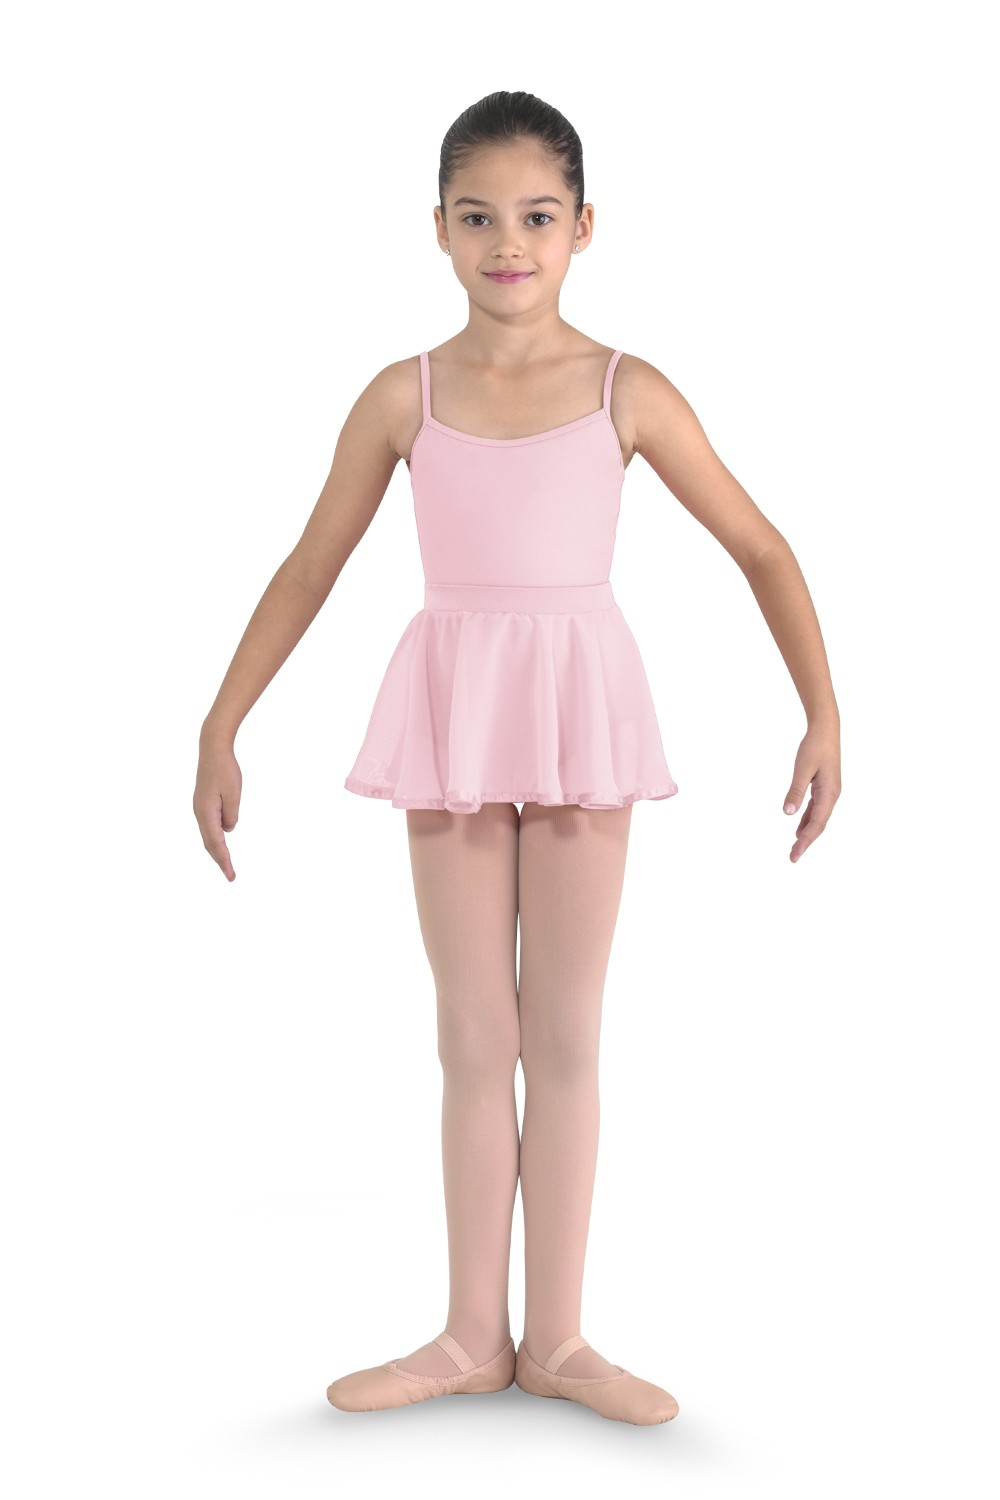 Ribbon Waist Camisole Children's Dance Leotards